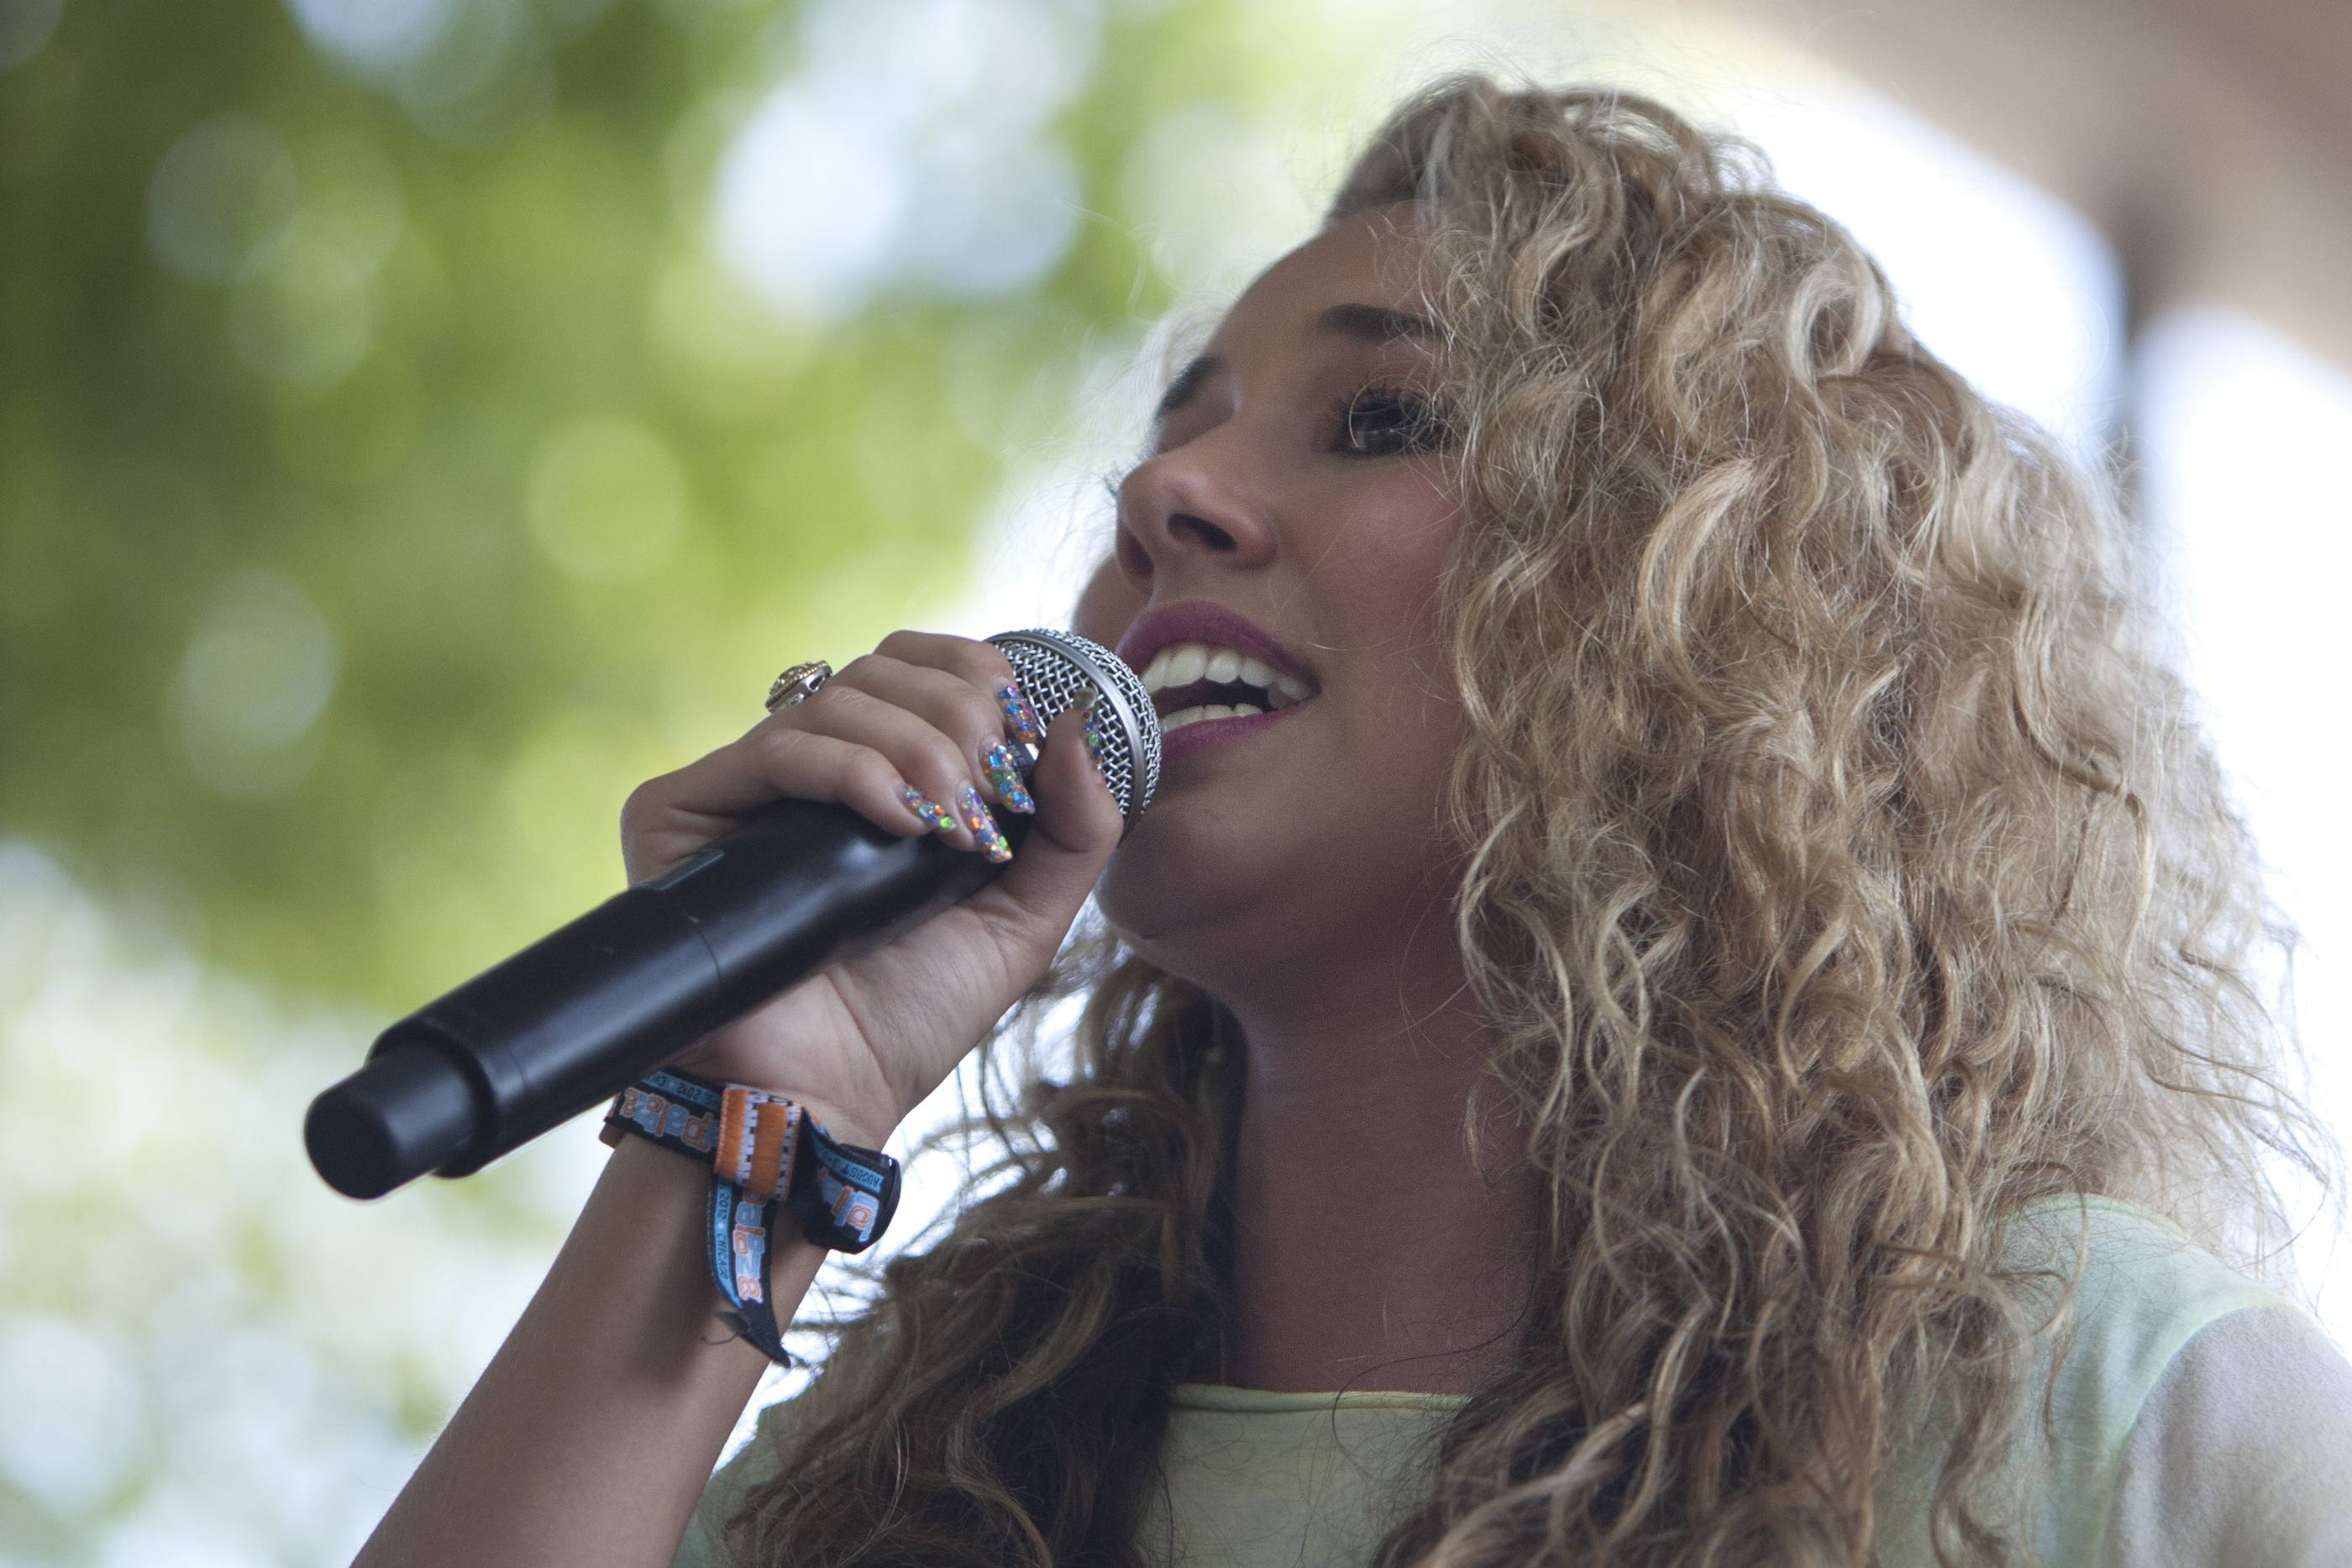 Wheeling native Haley Reinhart performs during Lollapalooza in 2012.